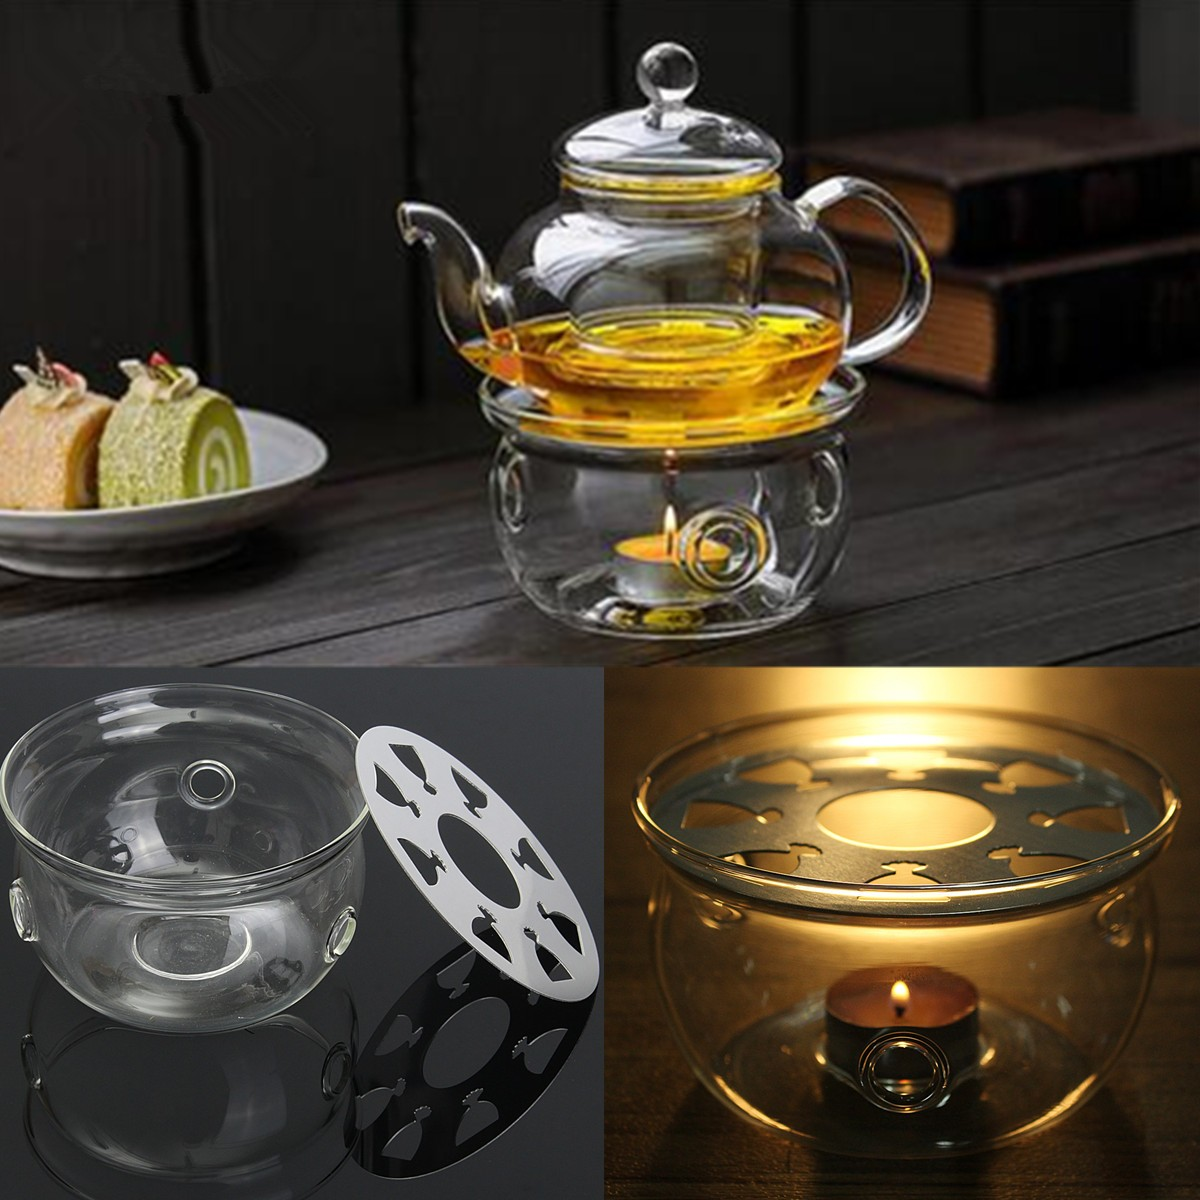 1pc Portable Clear Teapot Holder Base Coffee Water Tea Warmer Candle Holder Glass Heat-Resisting Teapot Warmer Insulation Base